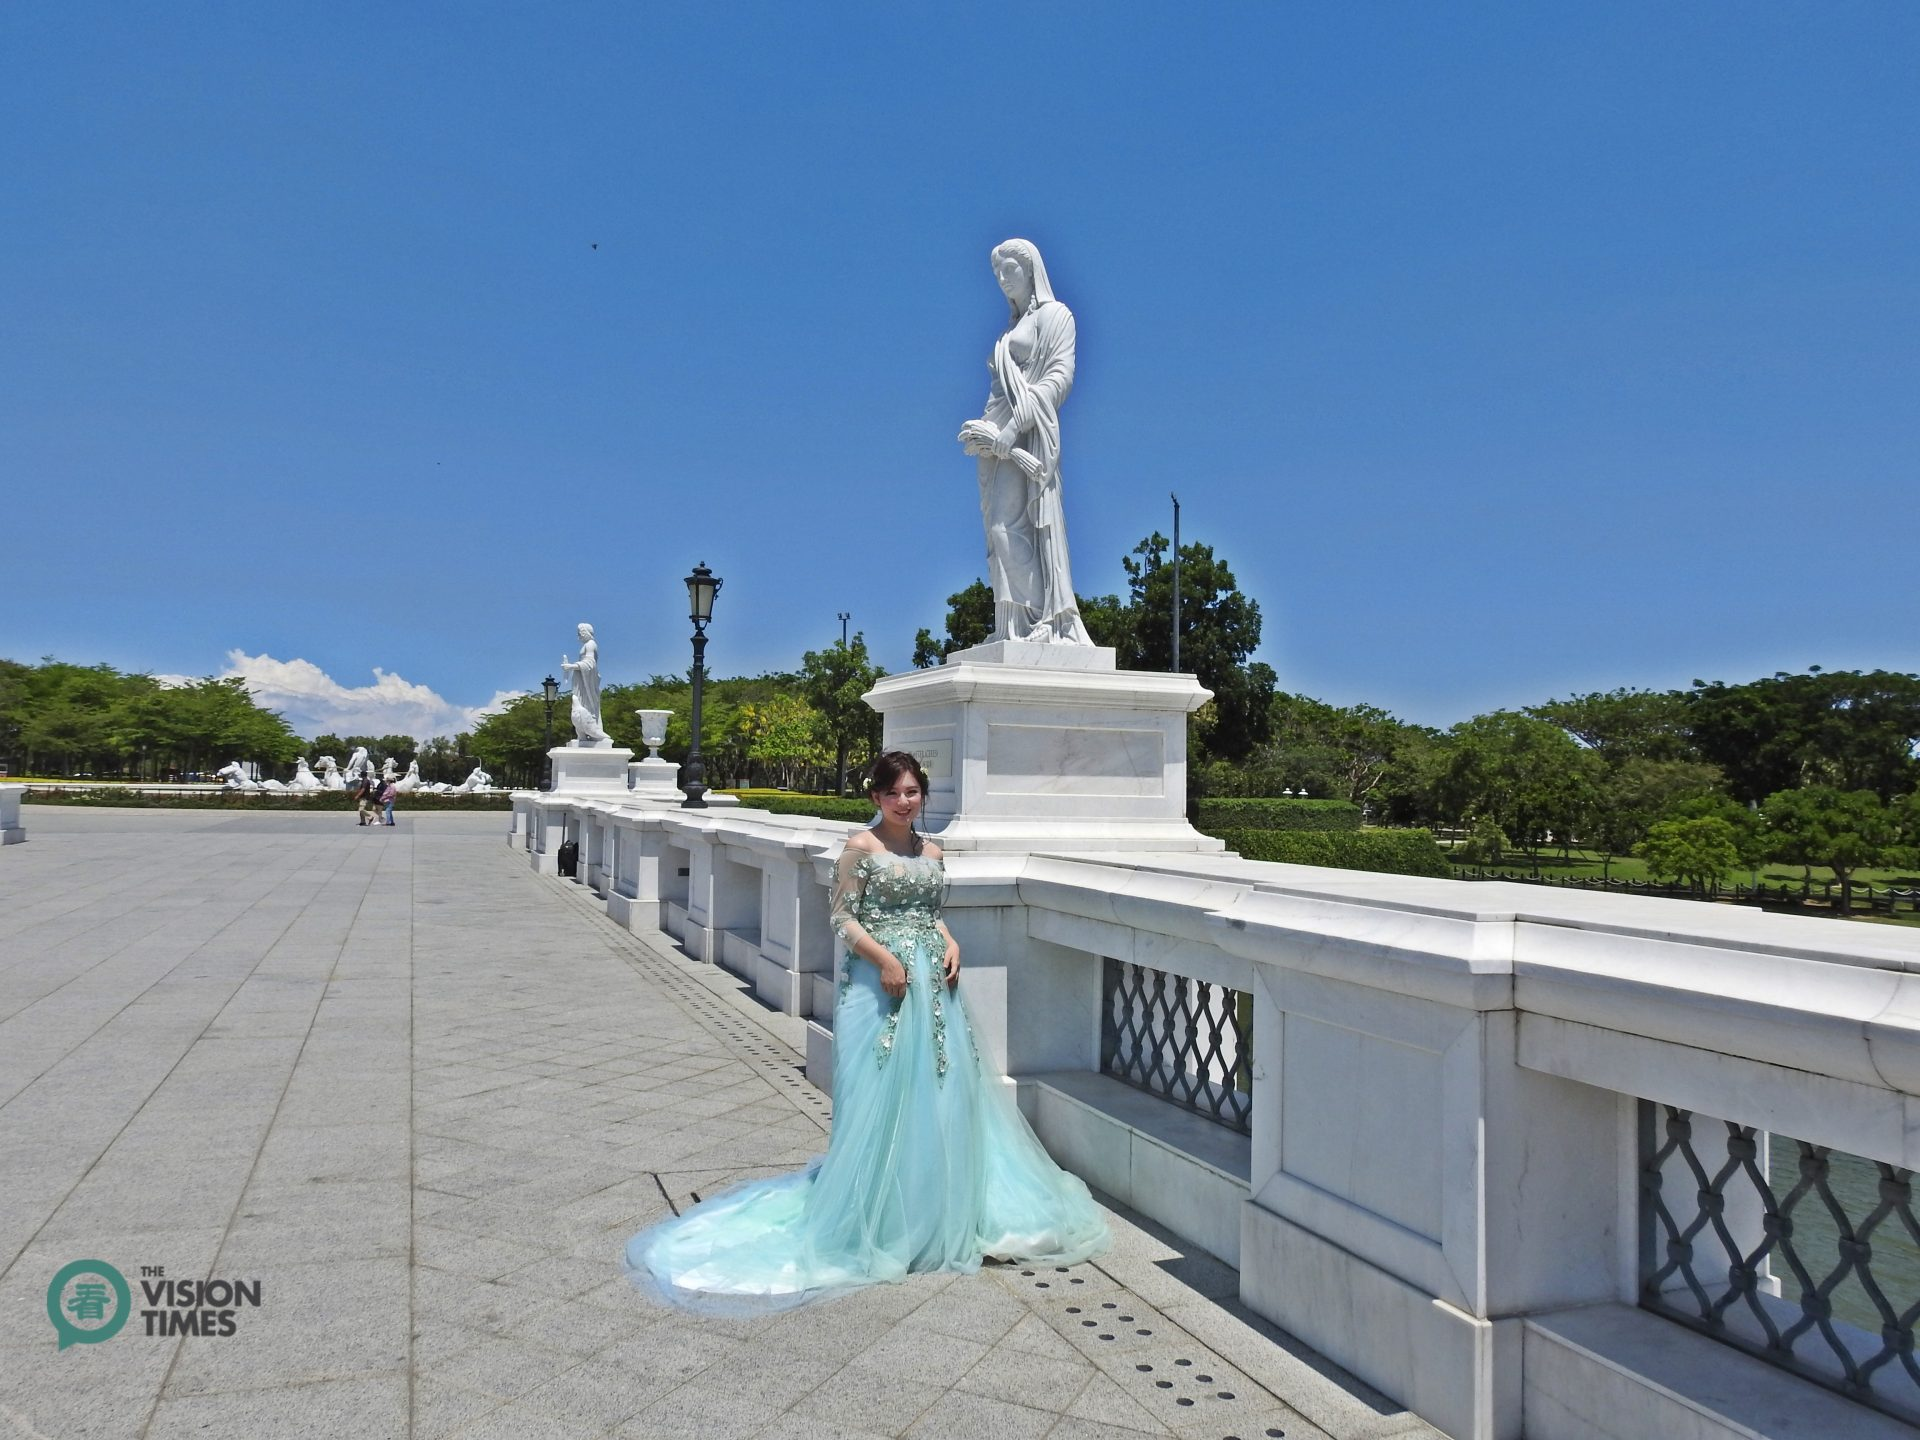 The Olympus Bridge is a hotspot that many people like to take their wedding or graduation photos. (Image: Billy Shyu / Vision Times)